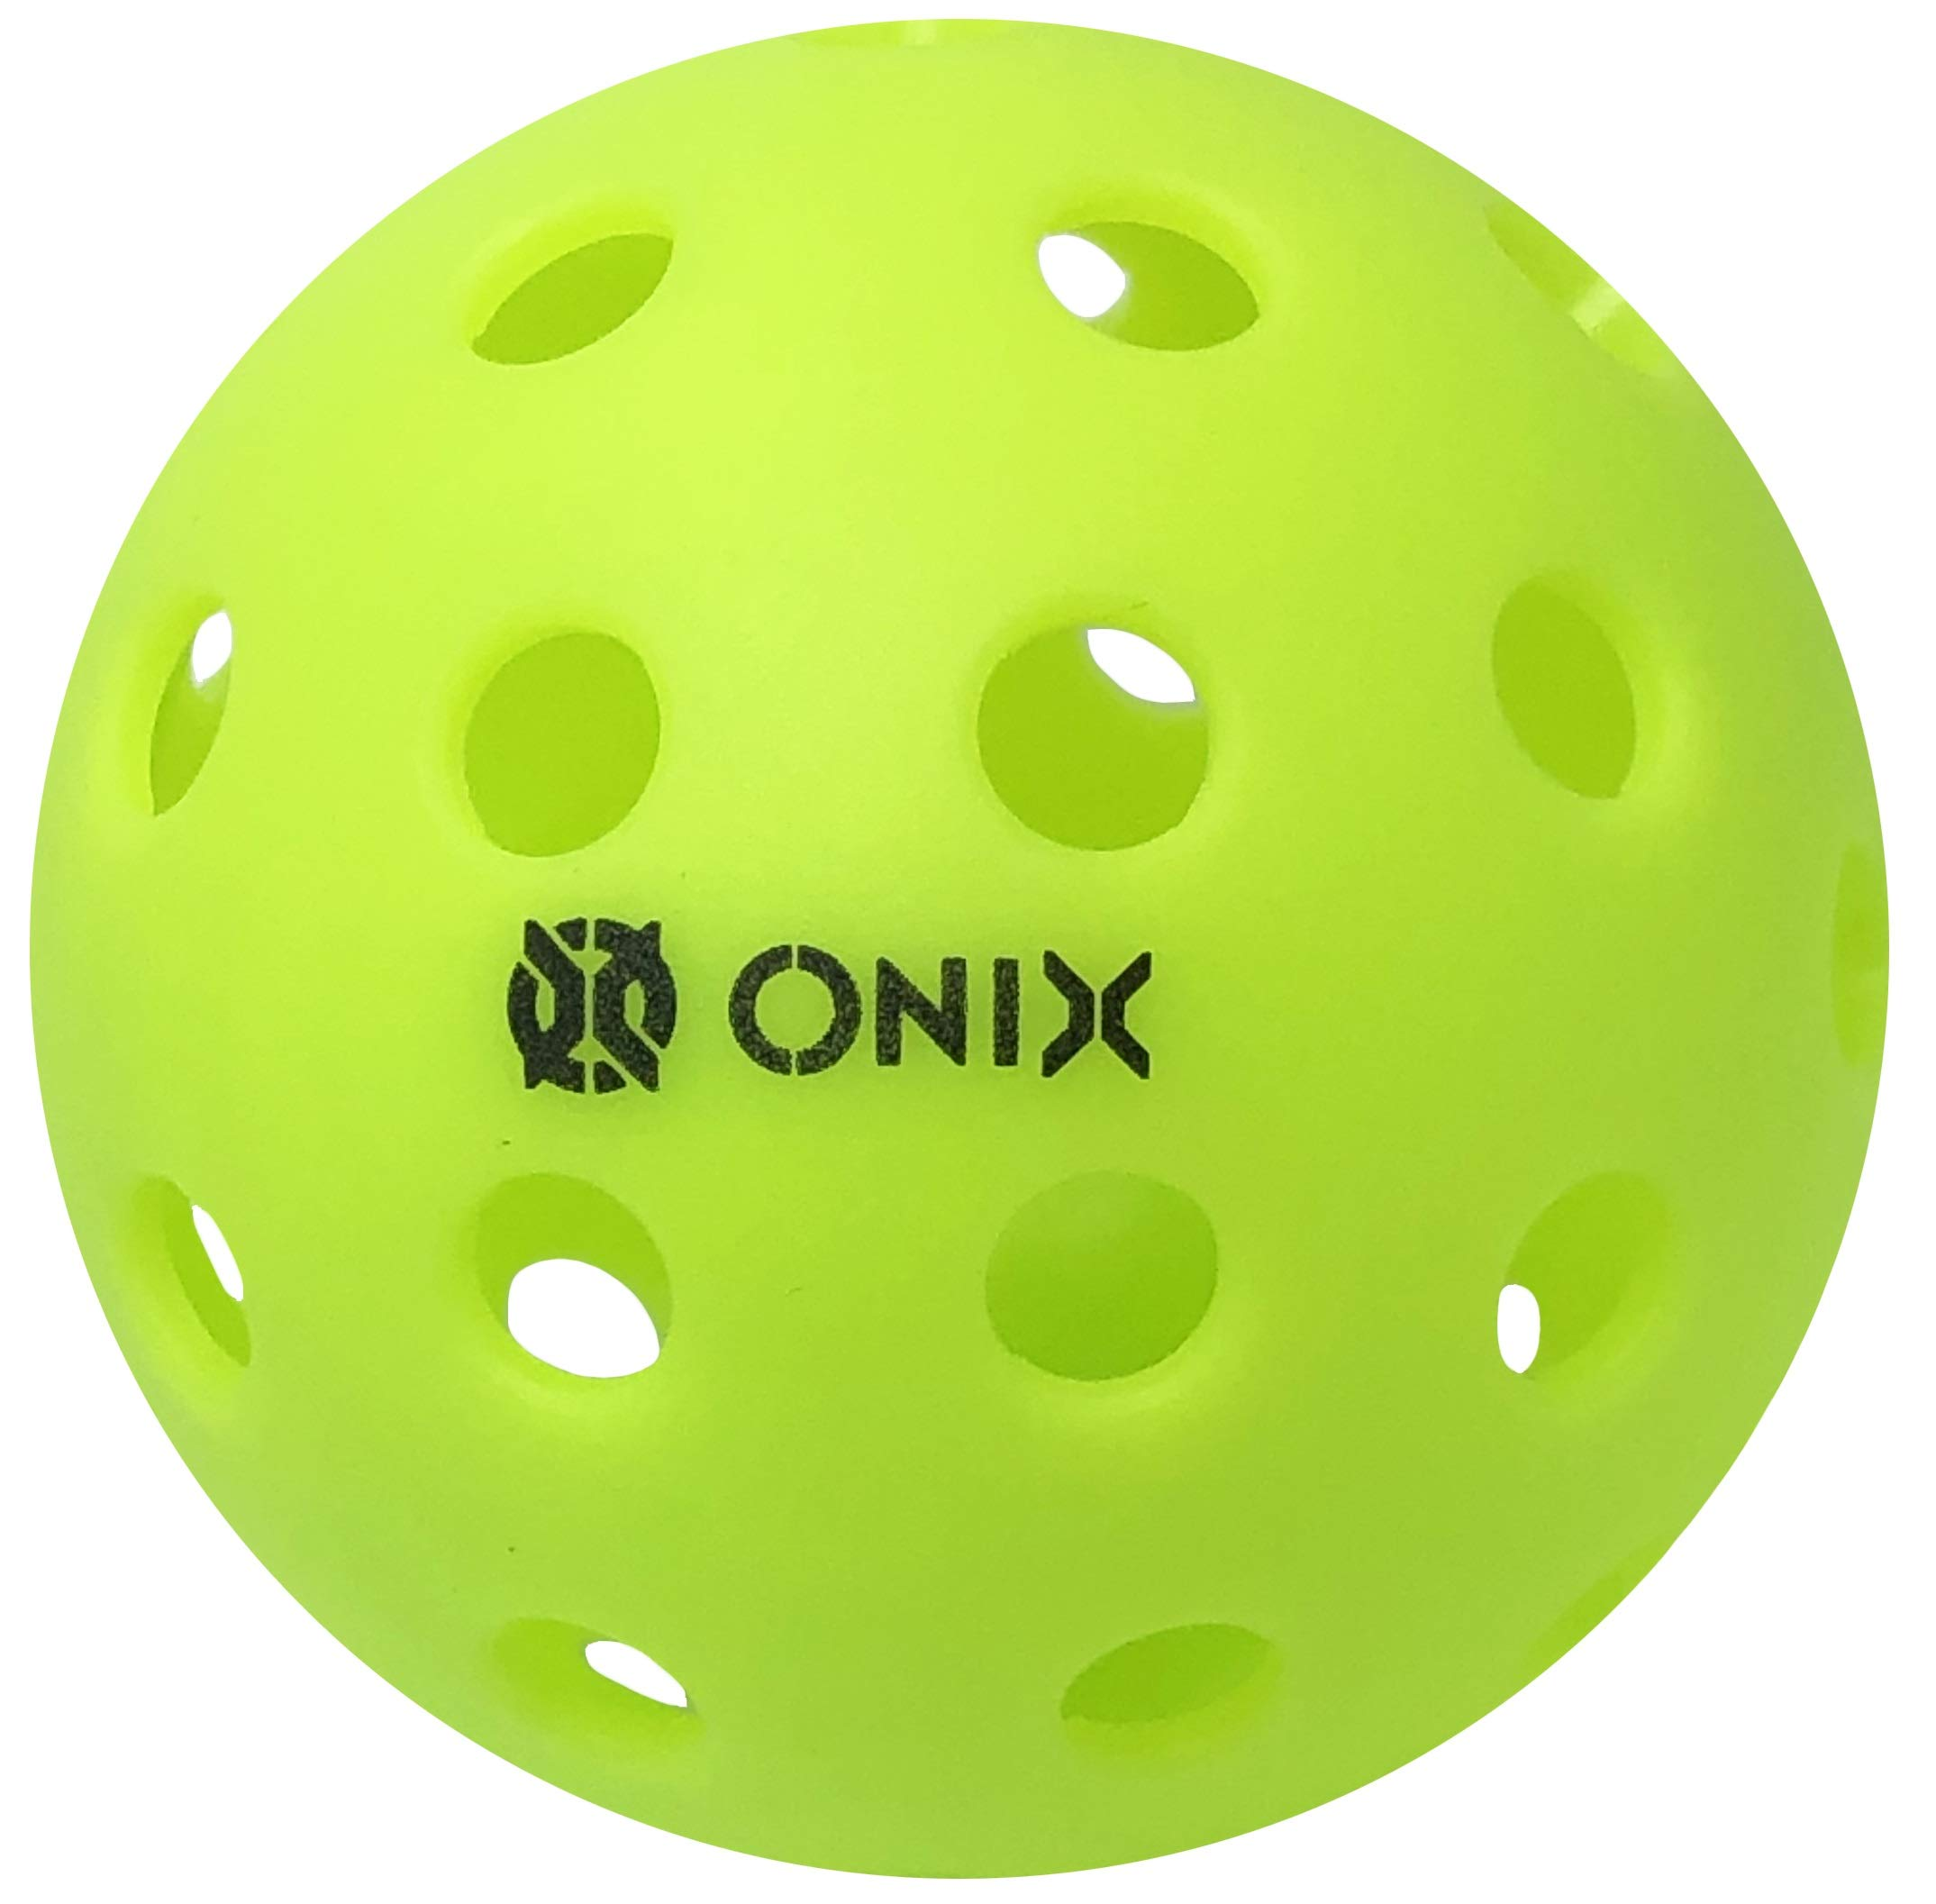 Onix Pure 2 Outdoor Pickleball Balls Specifically Designed and Optimized for Pickleball (6-Pack, Green)